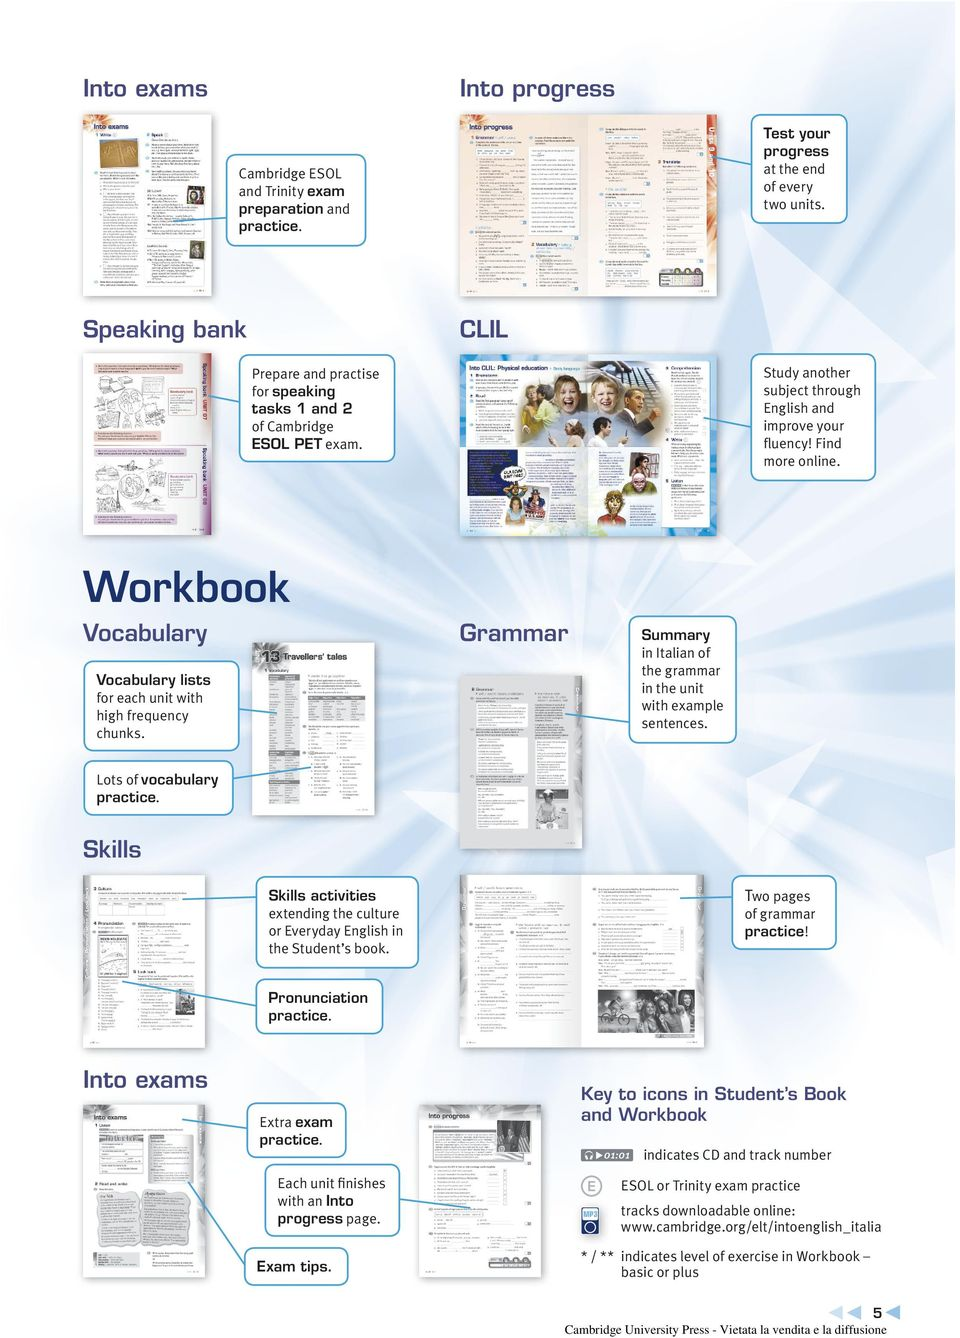 Workbook Vocabulary Vocabulary lists for each unit with high frequency chunks. Grammar Summary in Italian of the grammar in the unit with example sentences. Lots of vocabulary practice.